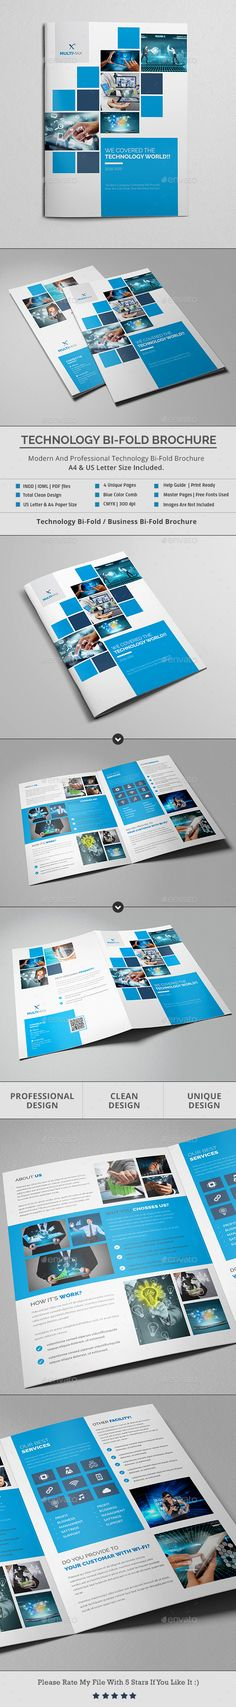 BiFold Brochure Template Perfect For Any Kind Of Business